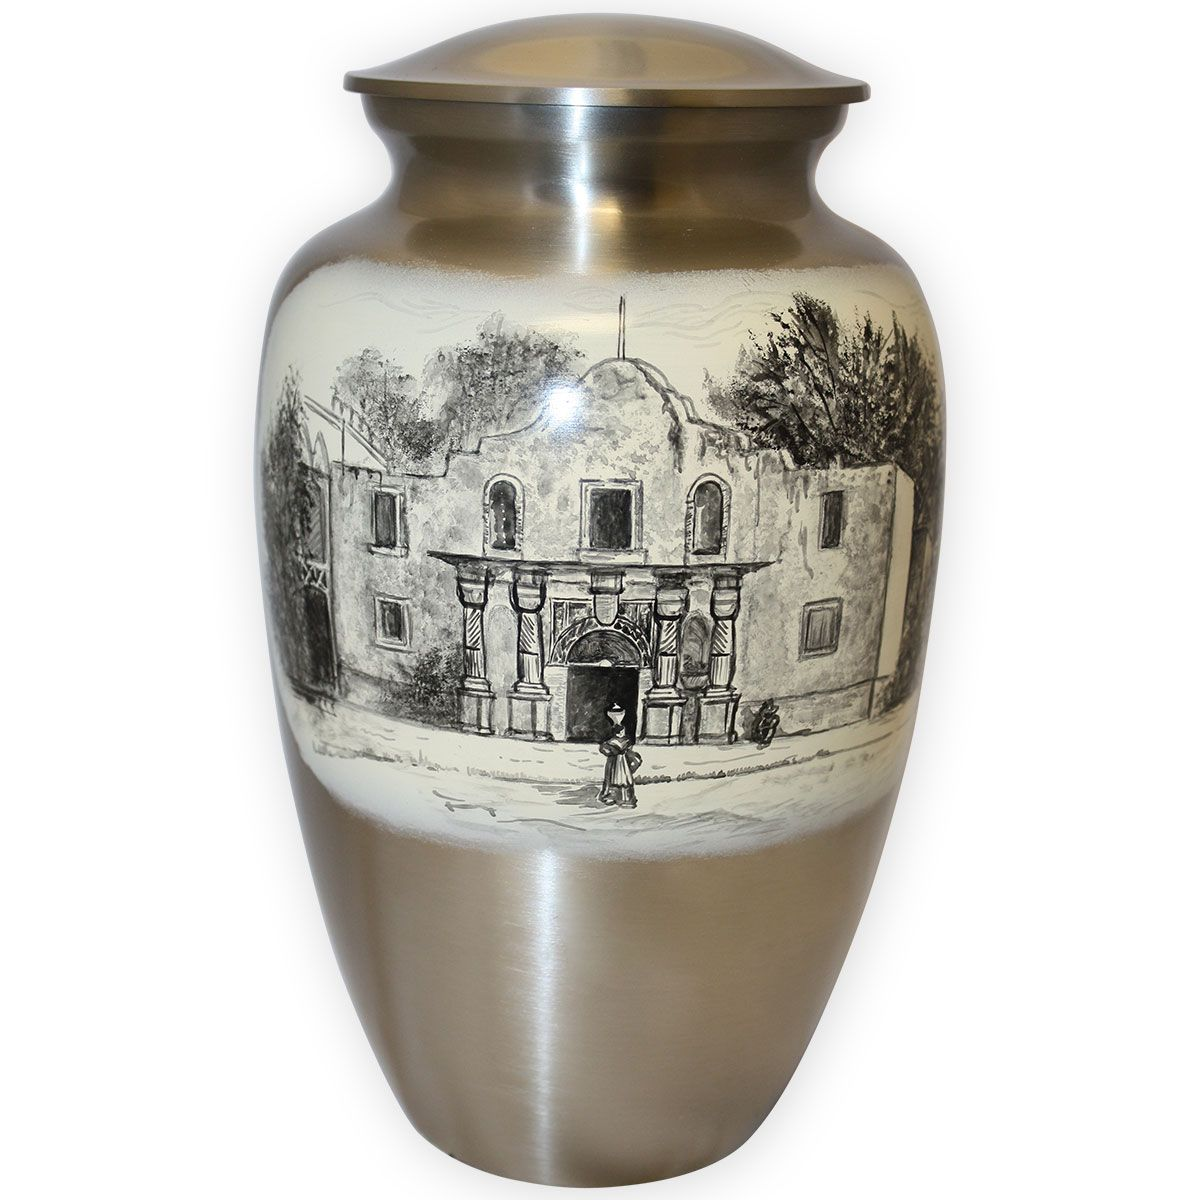 A rustic scene from bygone days is a fitting way to celebrate your loved one.